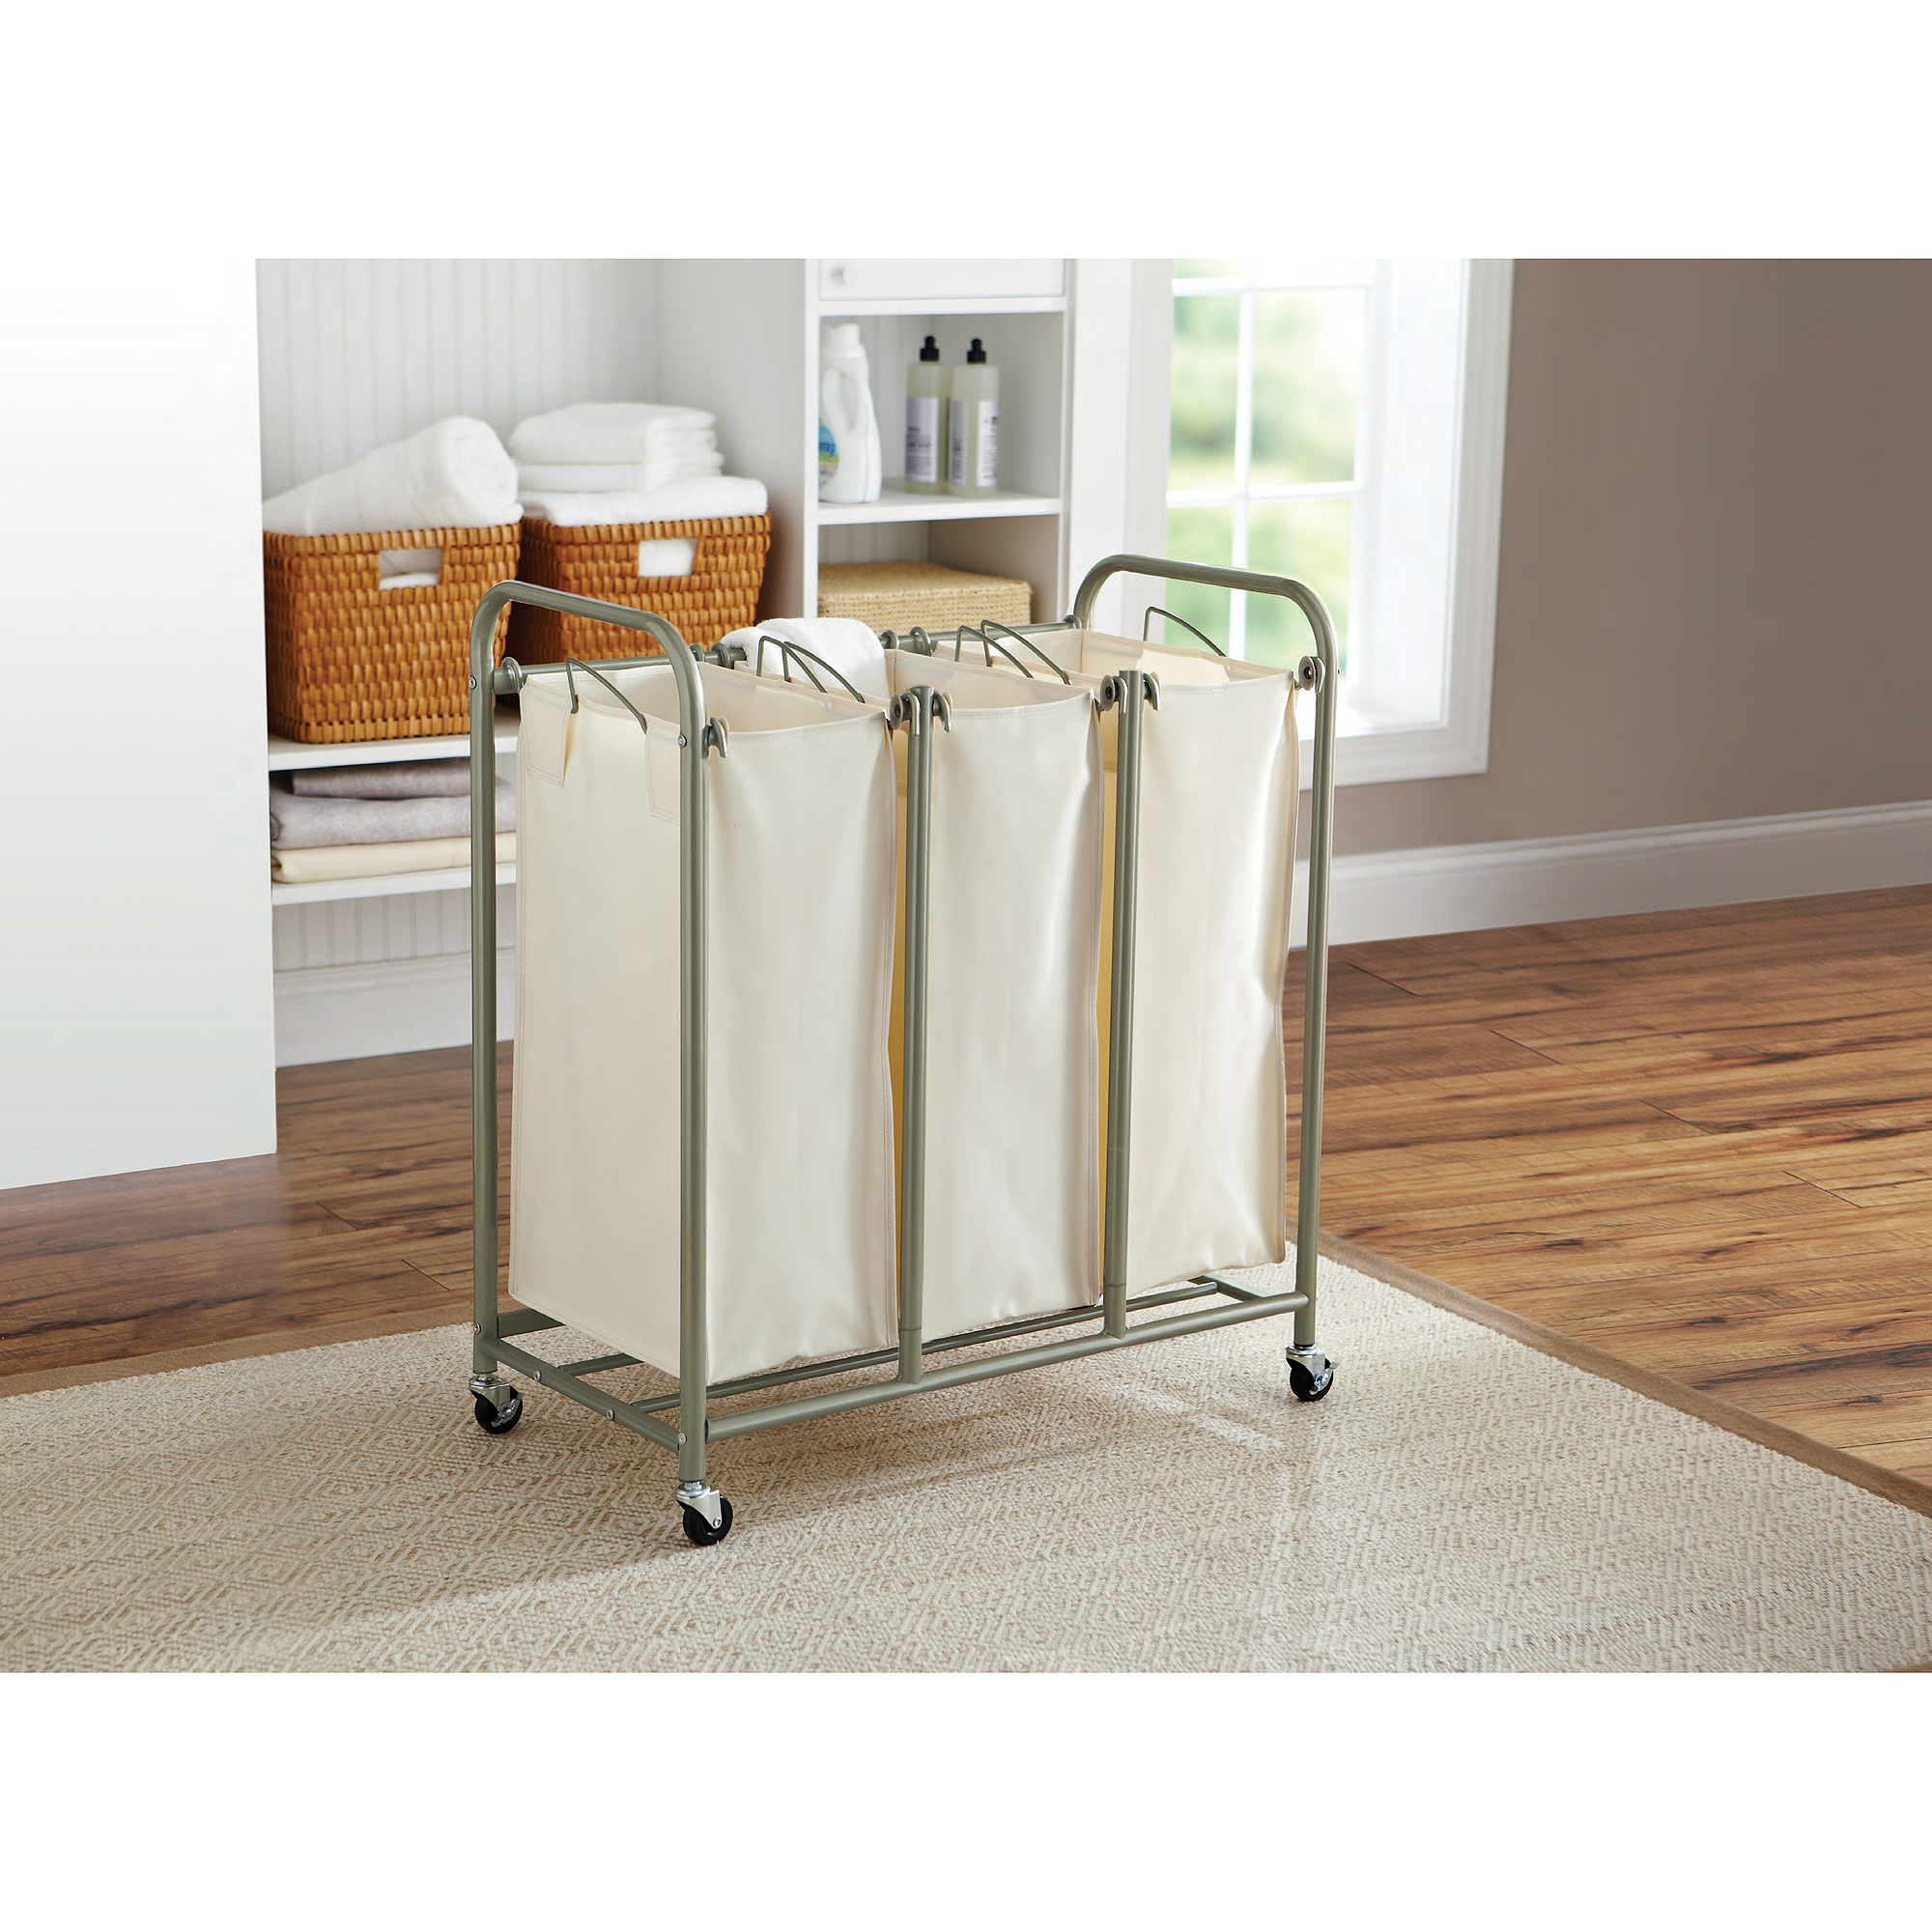 Better Homes and Gardens 3 Bag Laundry Sorter, Brown/Ivory